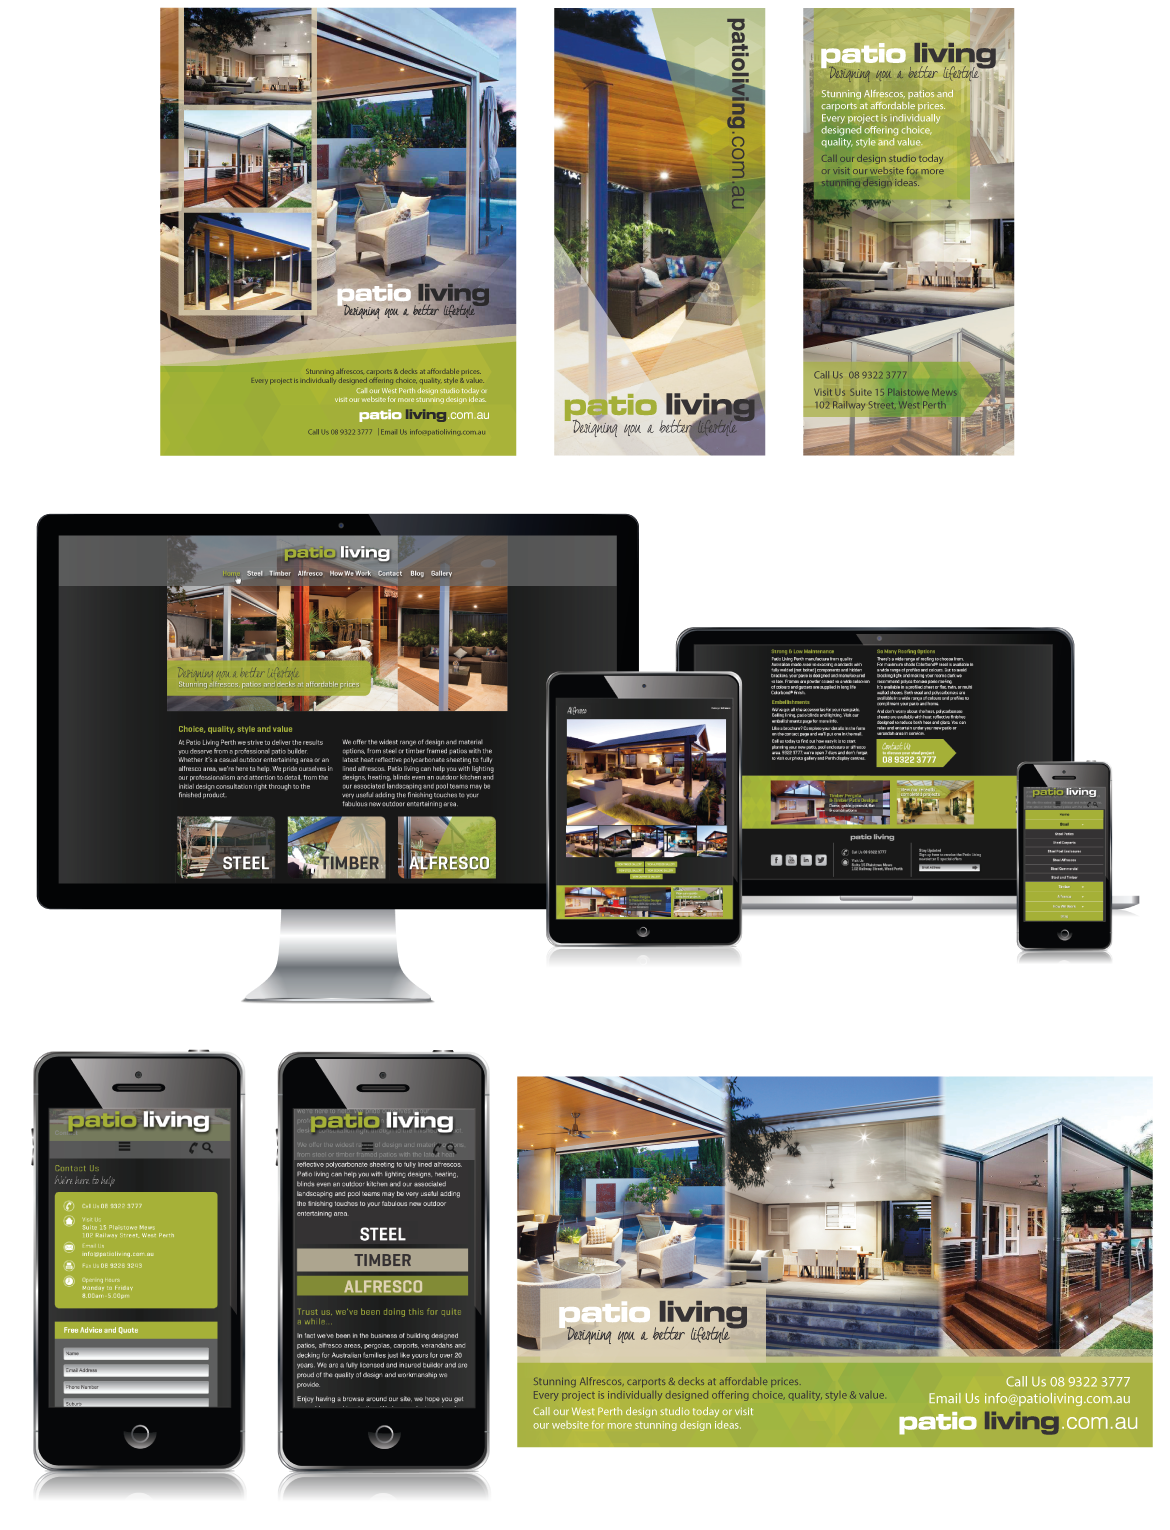 Website and Print Design for PatioLiving